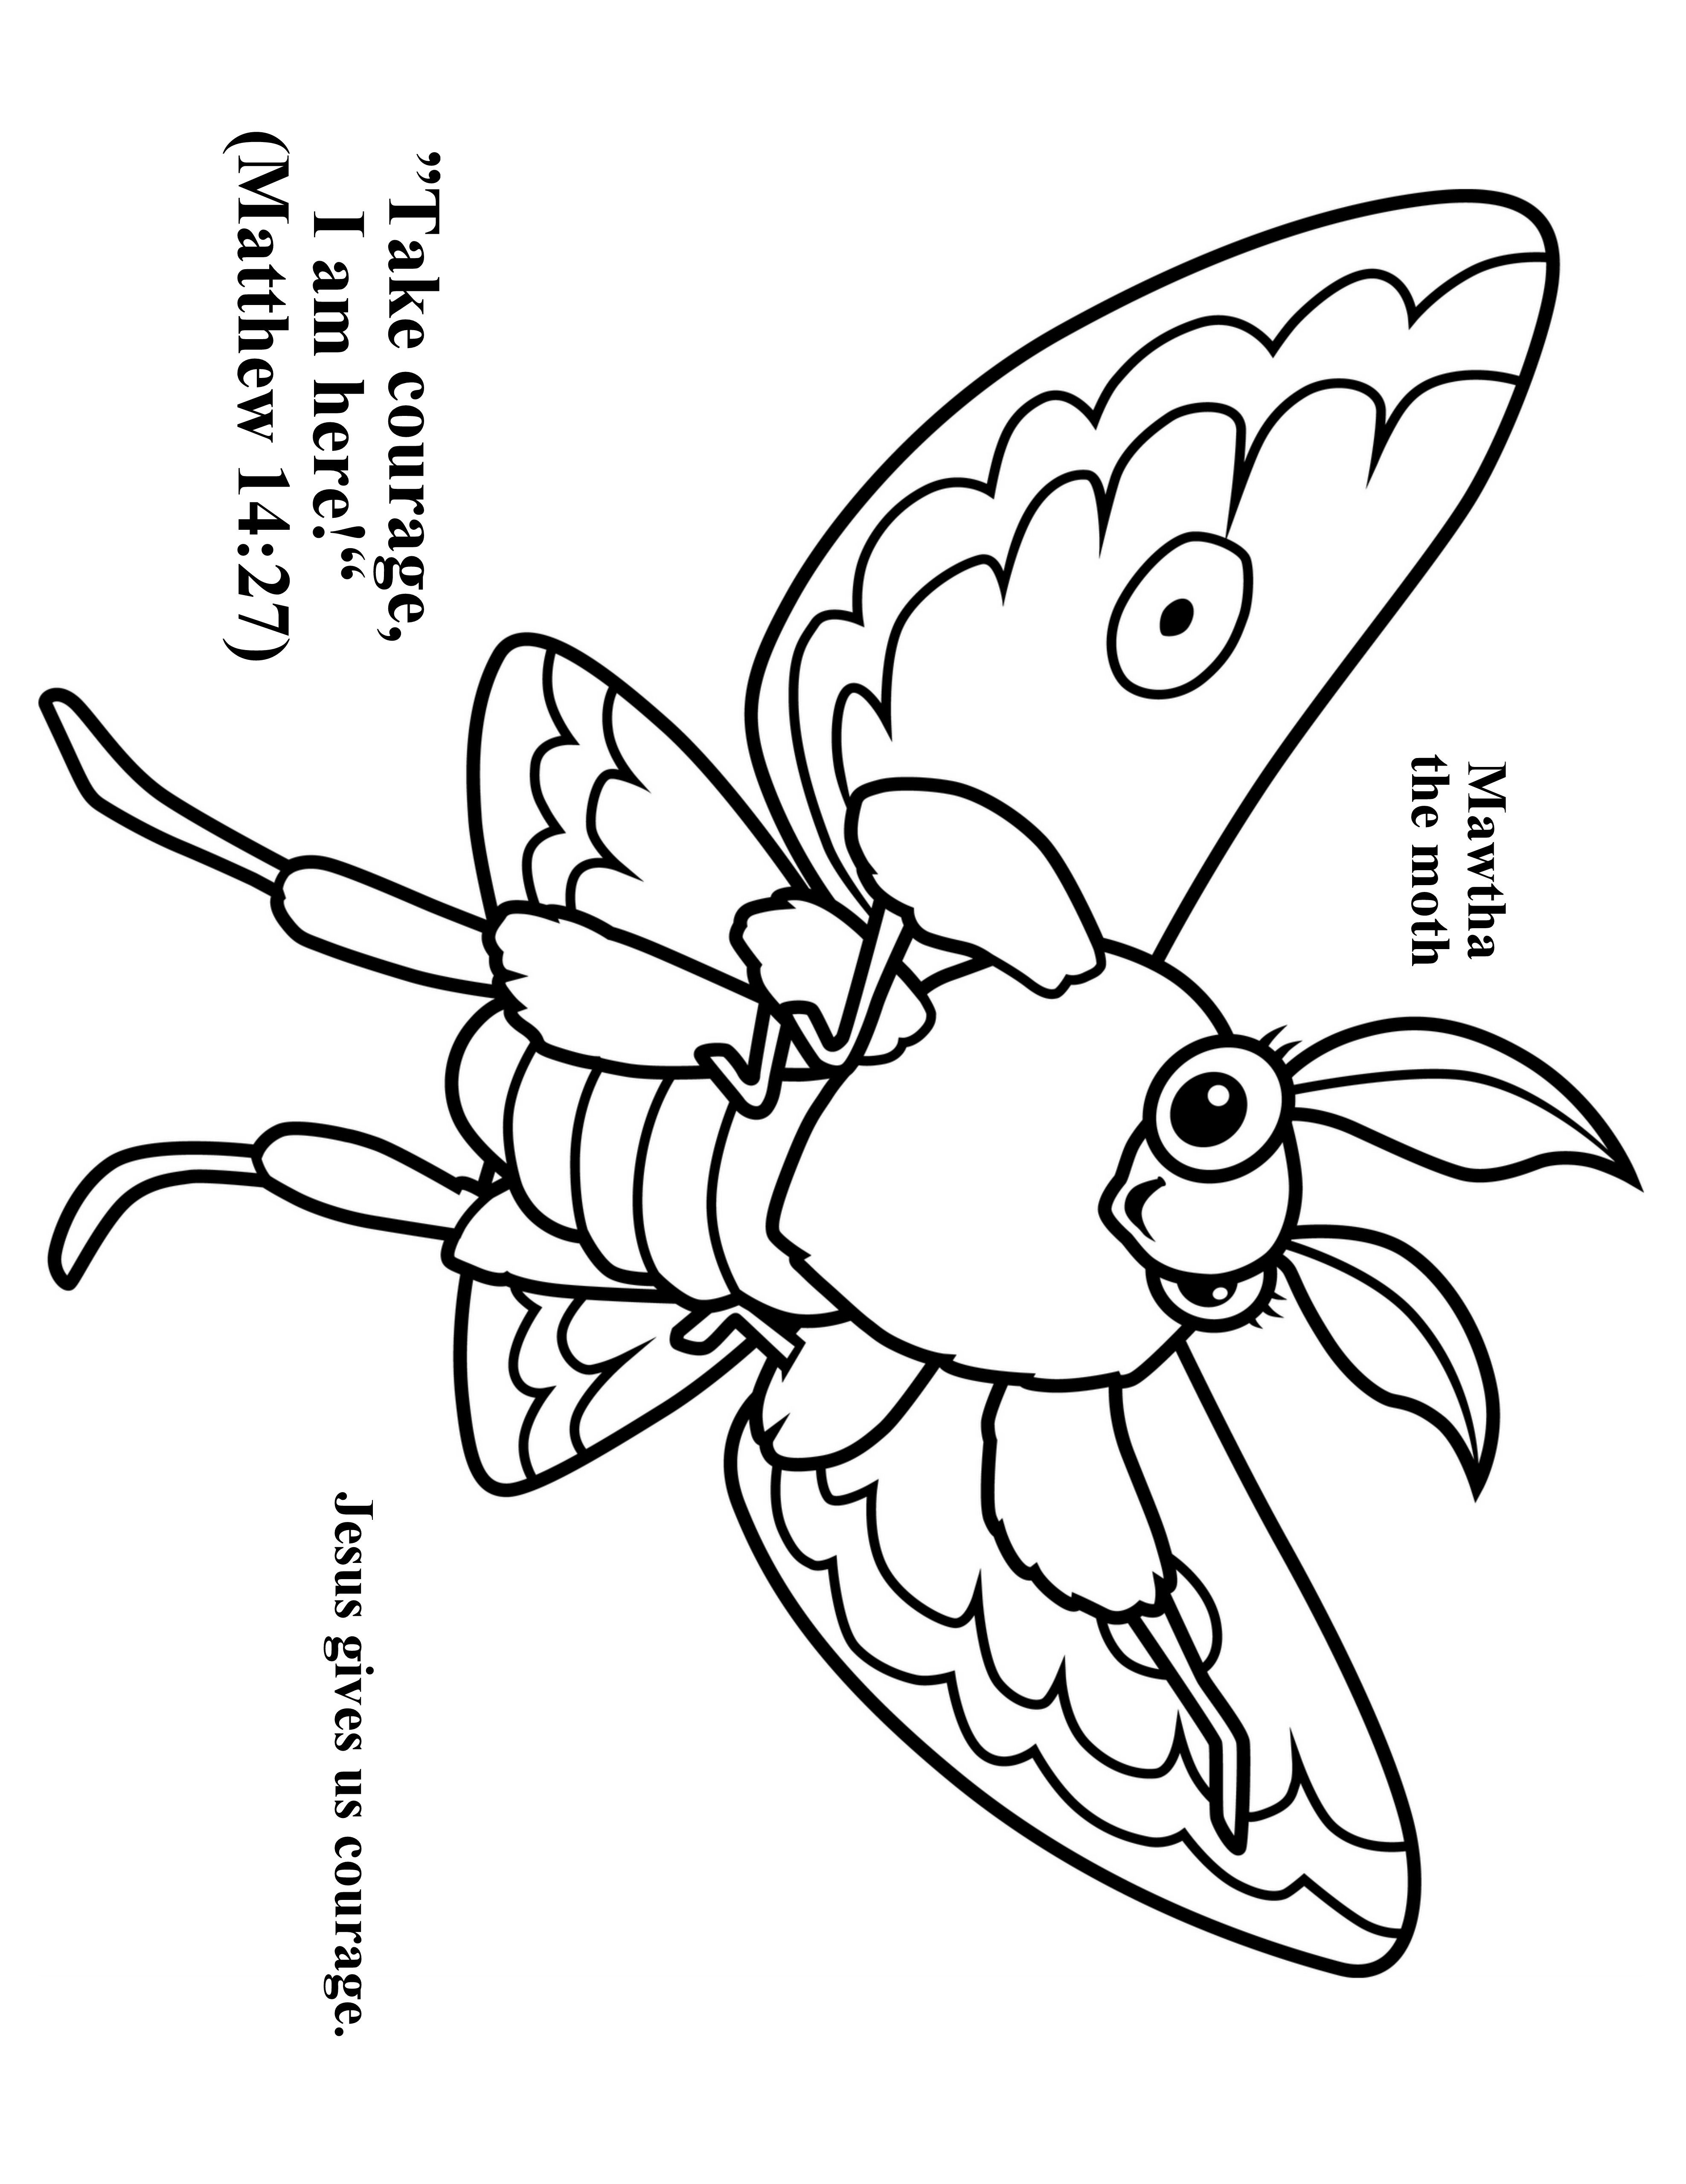 Cave Quest Day 2 Preschool Coloring Page Mawtha The Moth